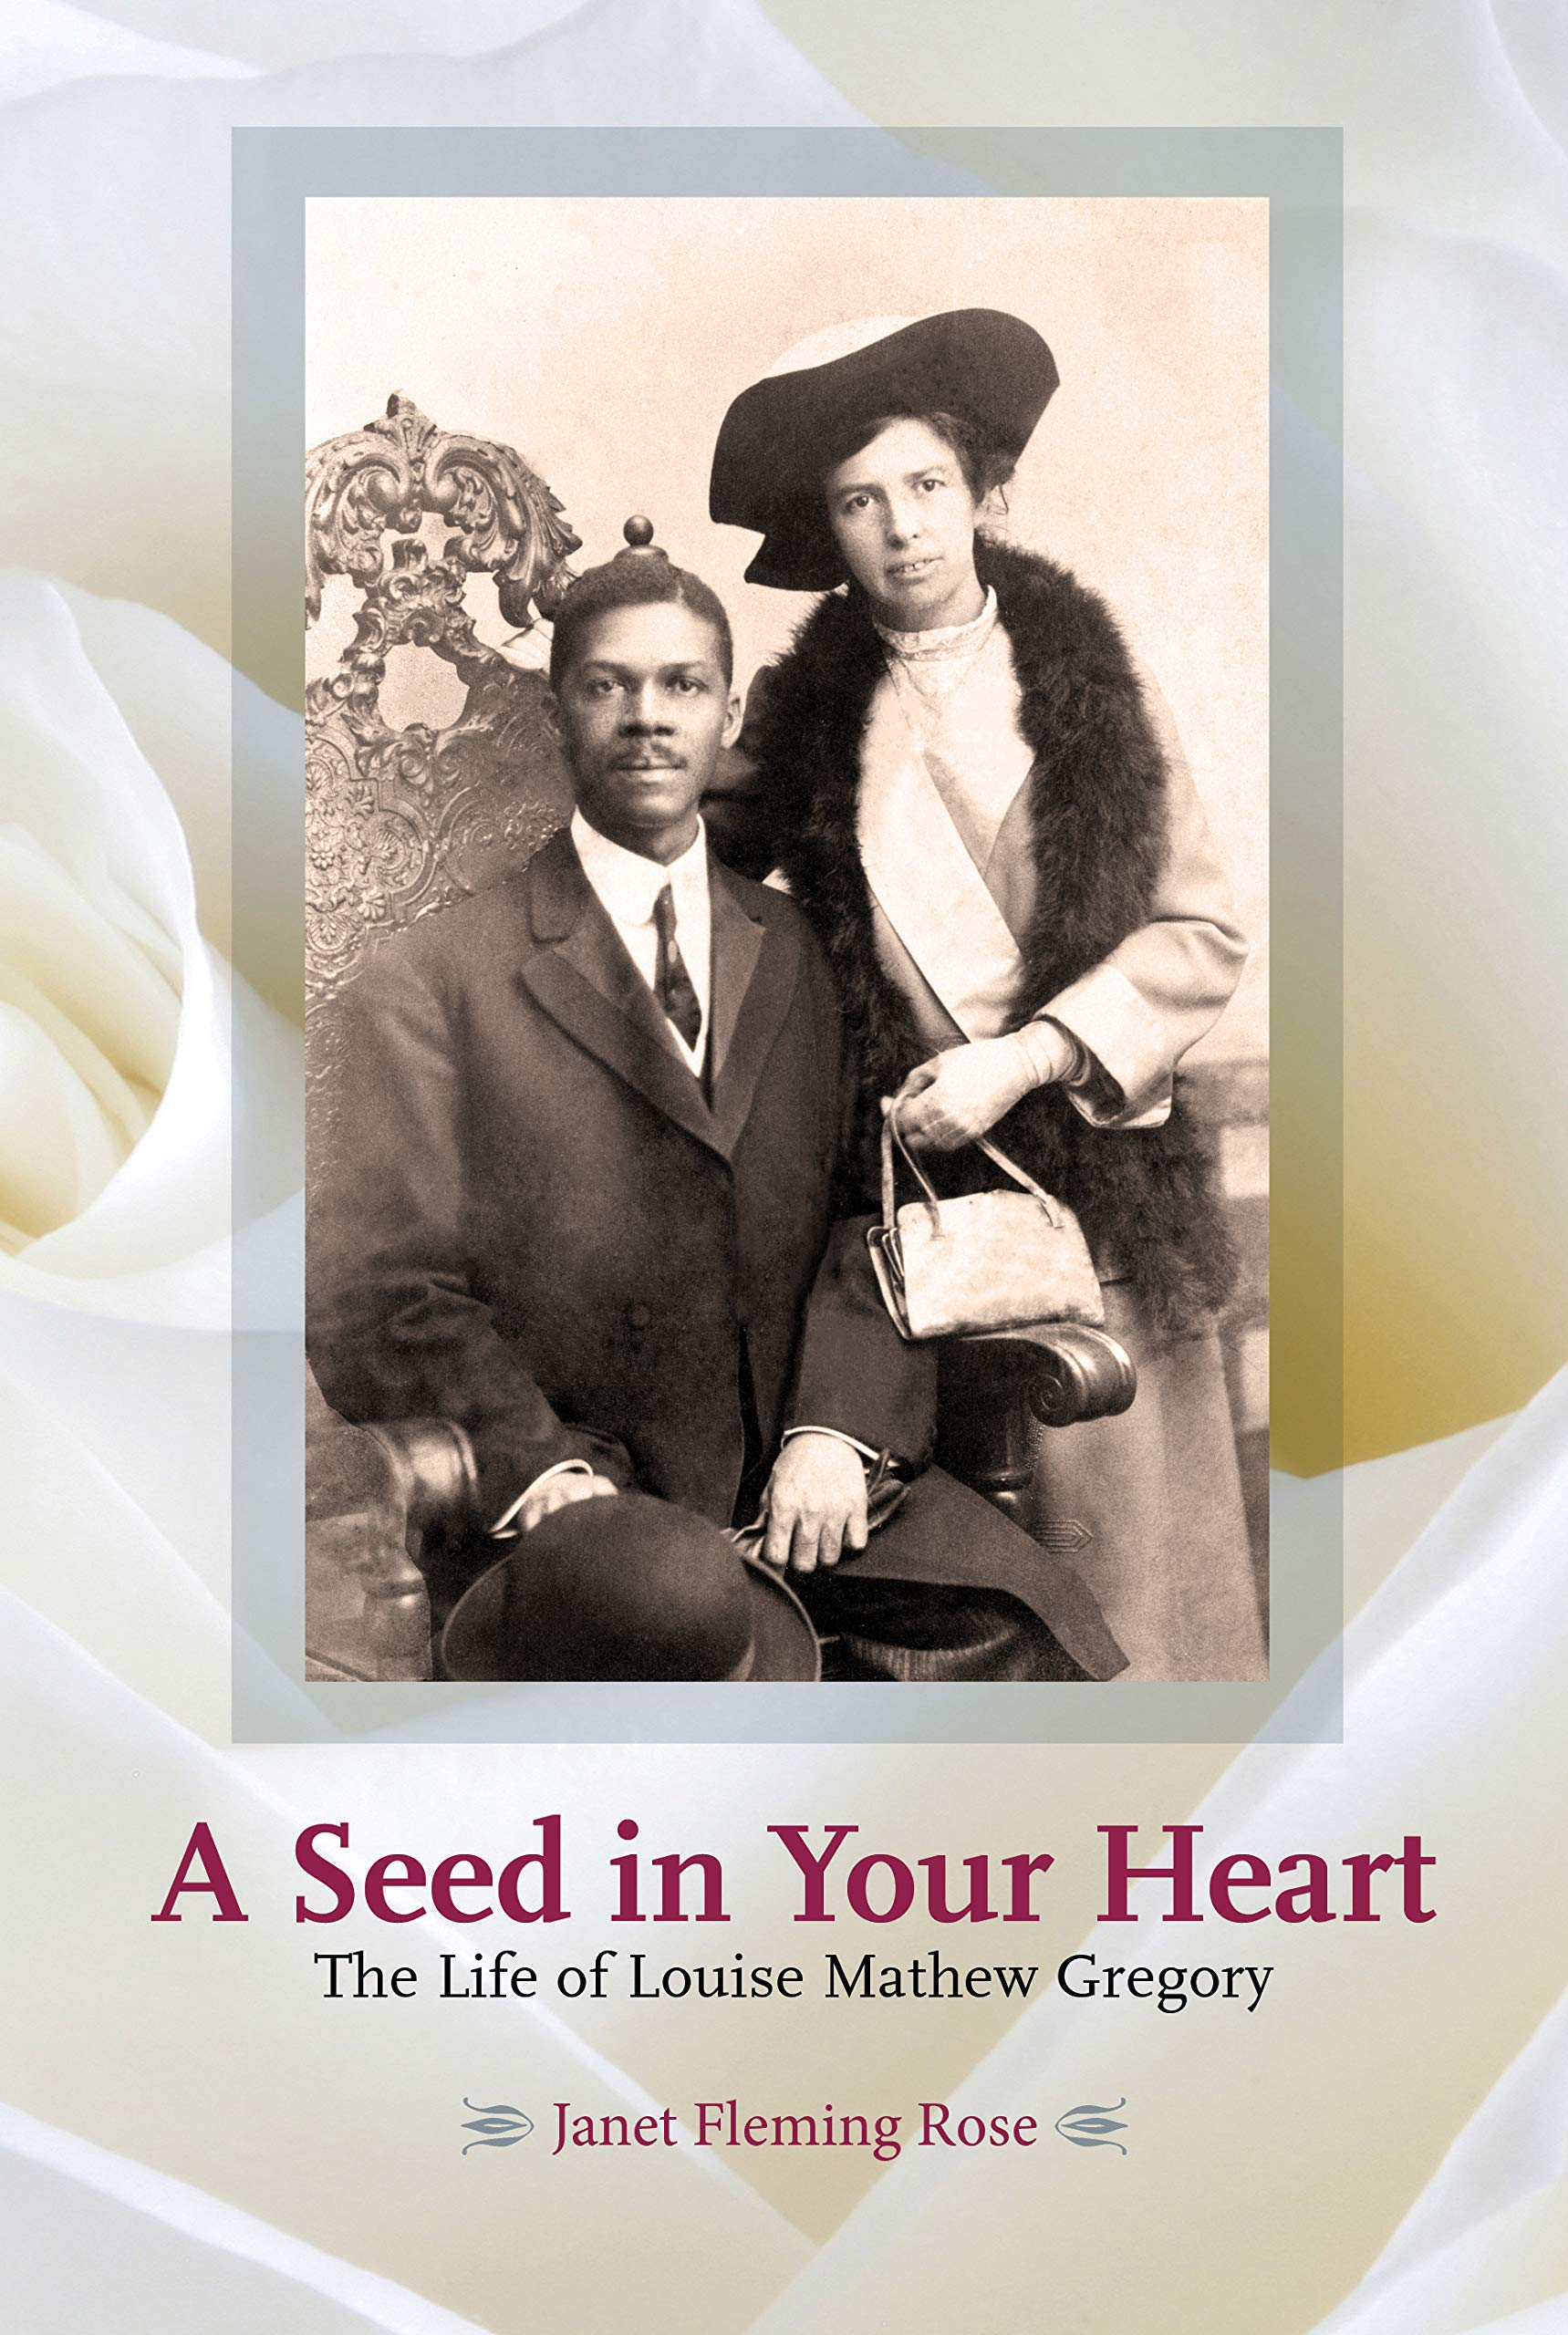 A Seed In Your Heart: The Life of Louise Mathew Gregory